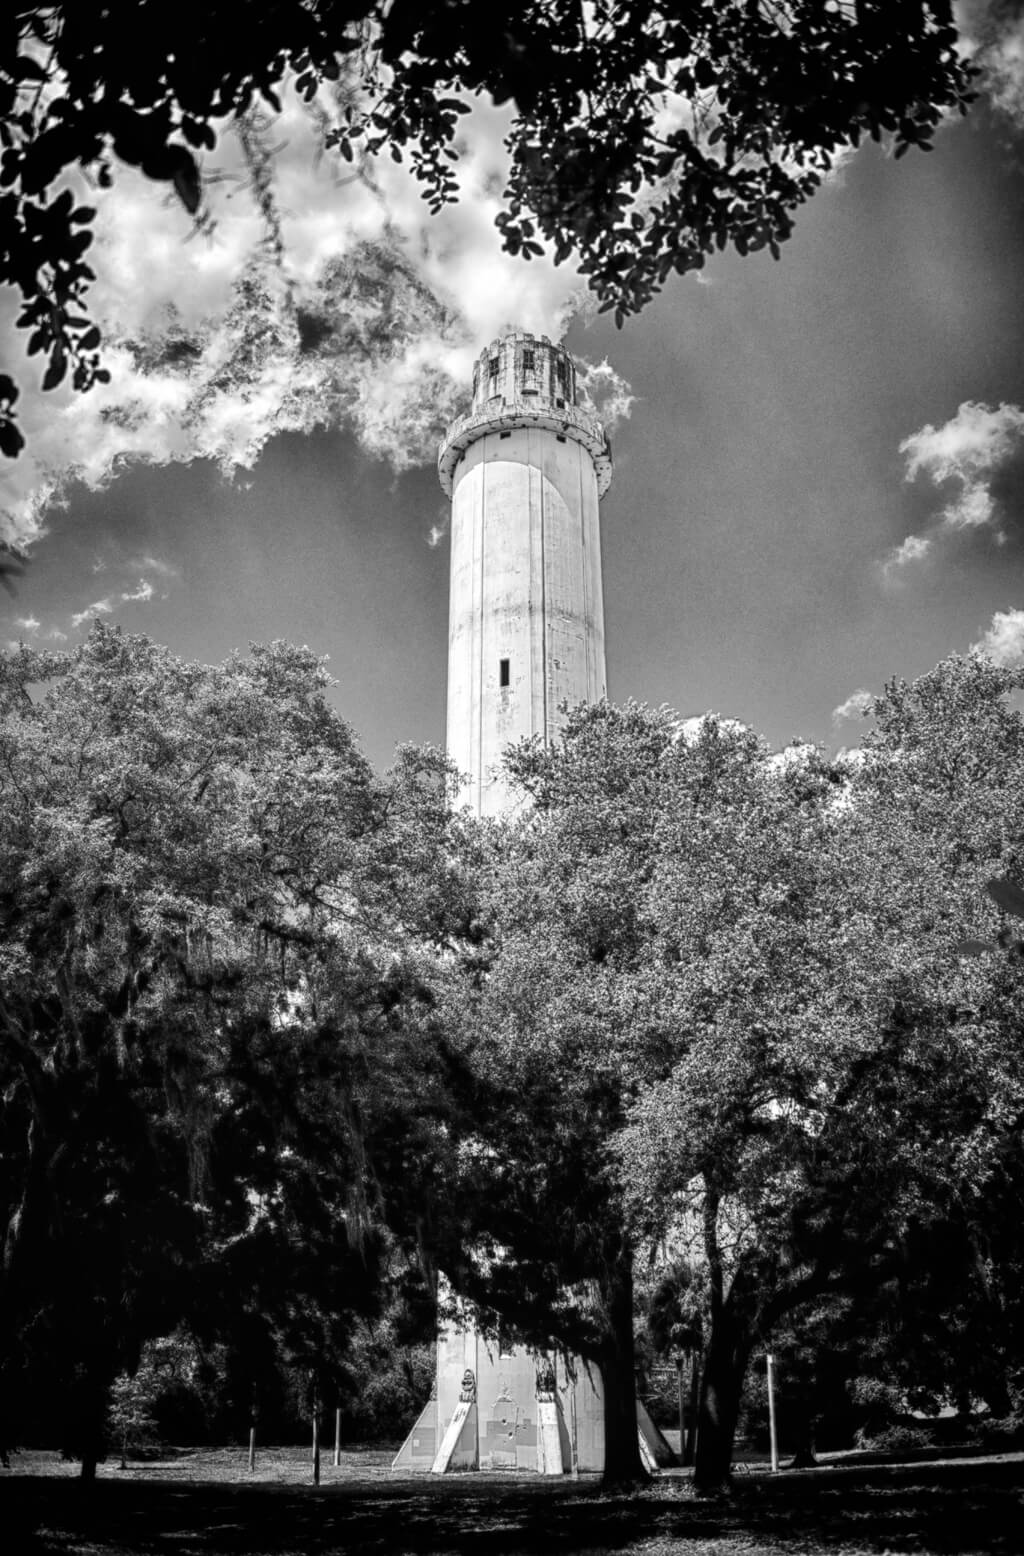 Sulphur Springs Water Tower, Tampa, FL